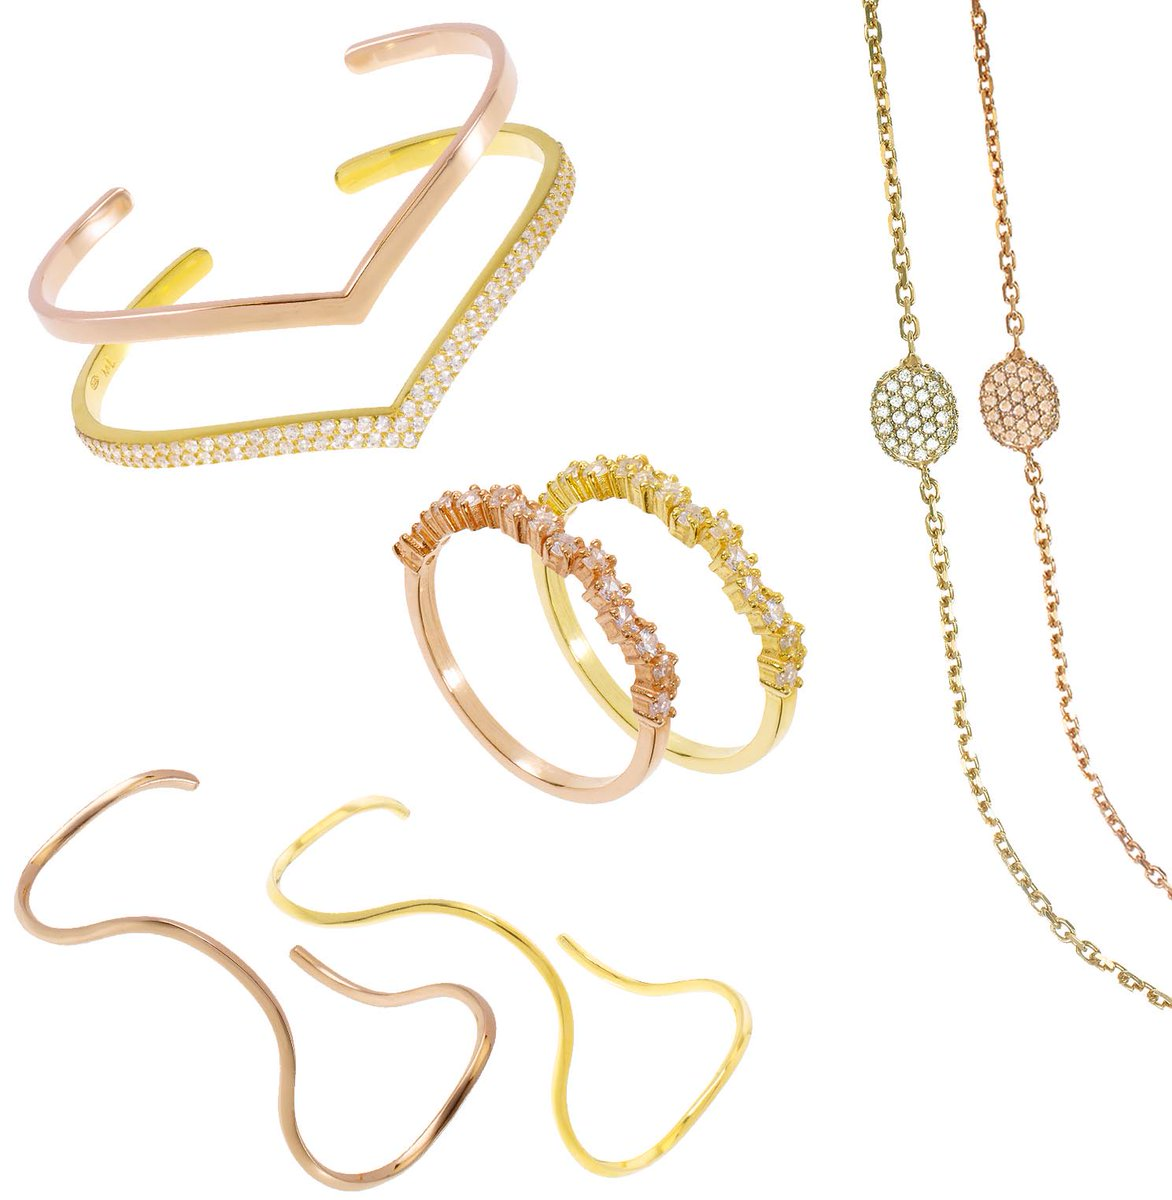 Pinch, Punch, 1st of the month. Time for something new! Let's clash https://t.co/KQKjnoCR9u #roseandyellowgold https://t.co/aq9vgpTicM